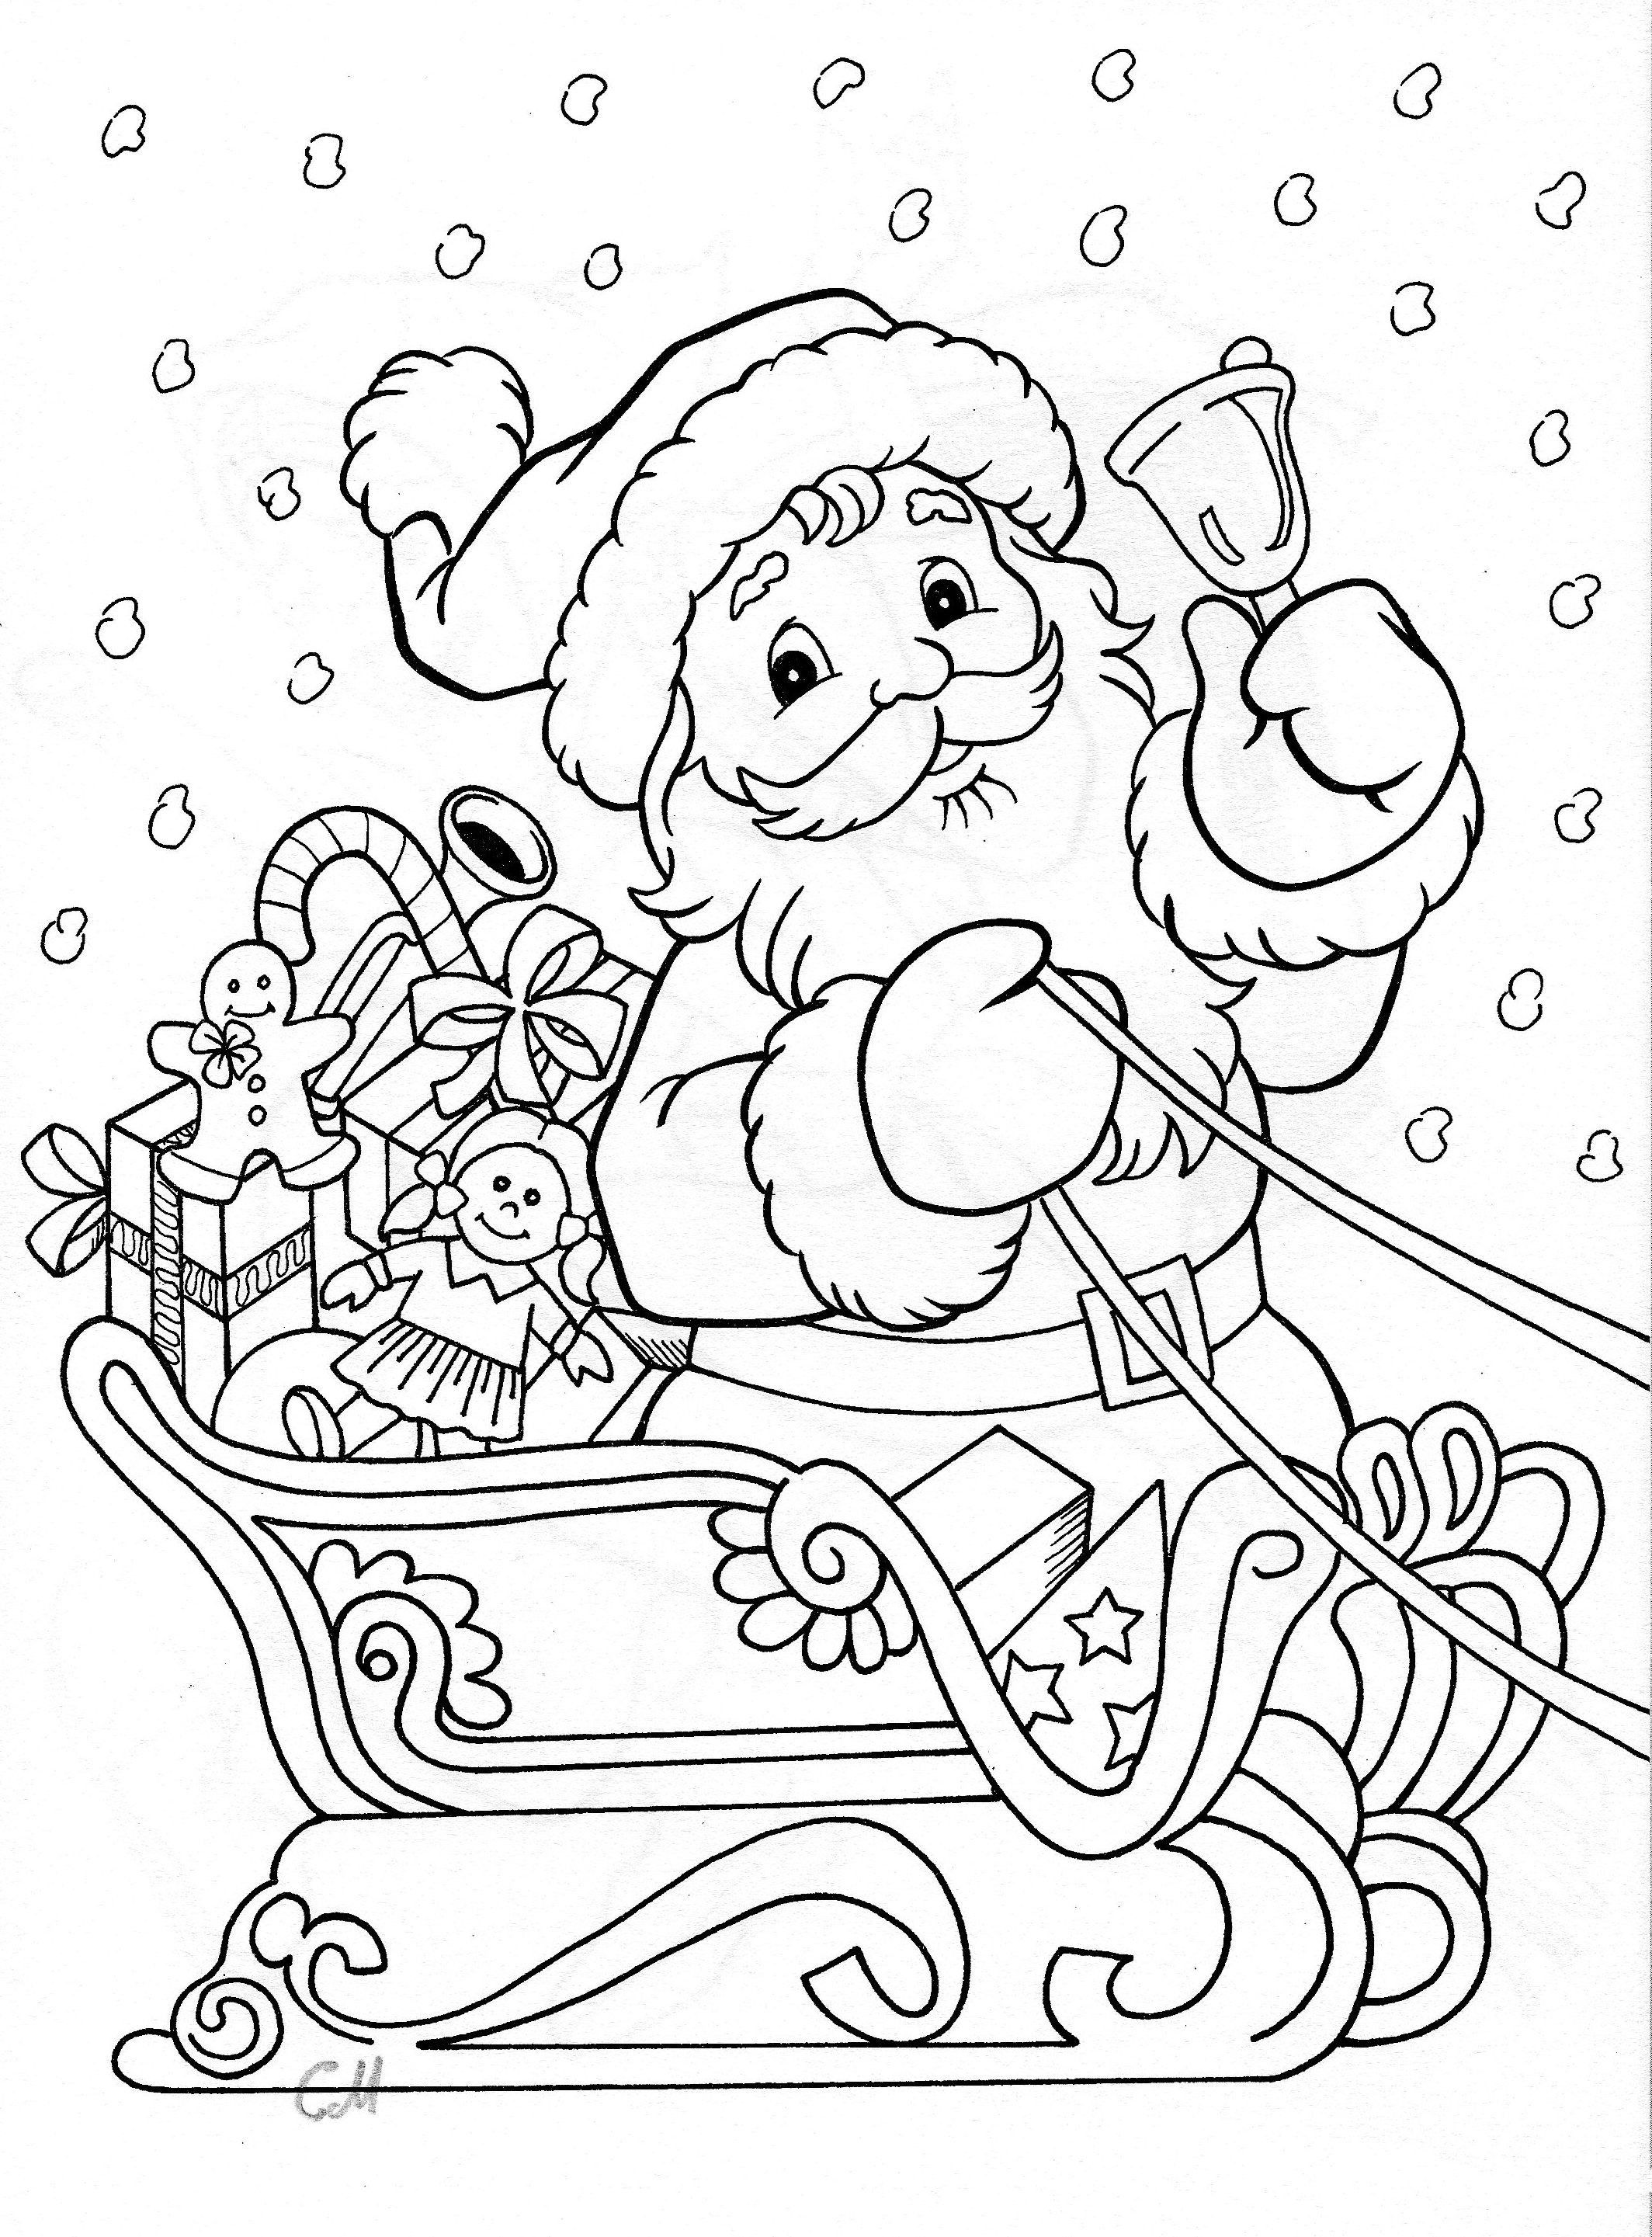 New Father Christmas Colouring Pages Coloring Coloringpages Coloringpagesf Christmas Coloring Sheets Printable Christmas Coloring Pages Santa Coloring Pages